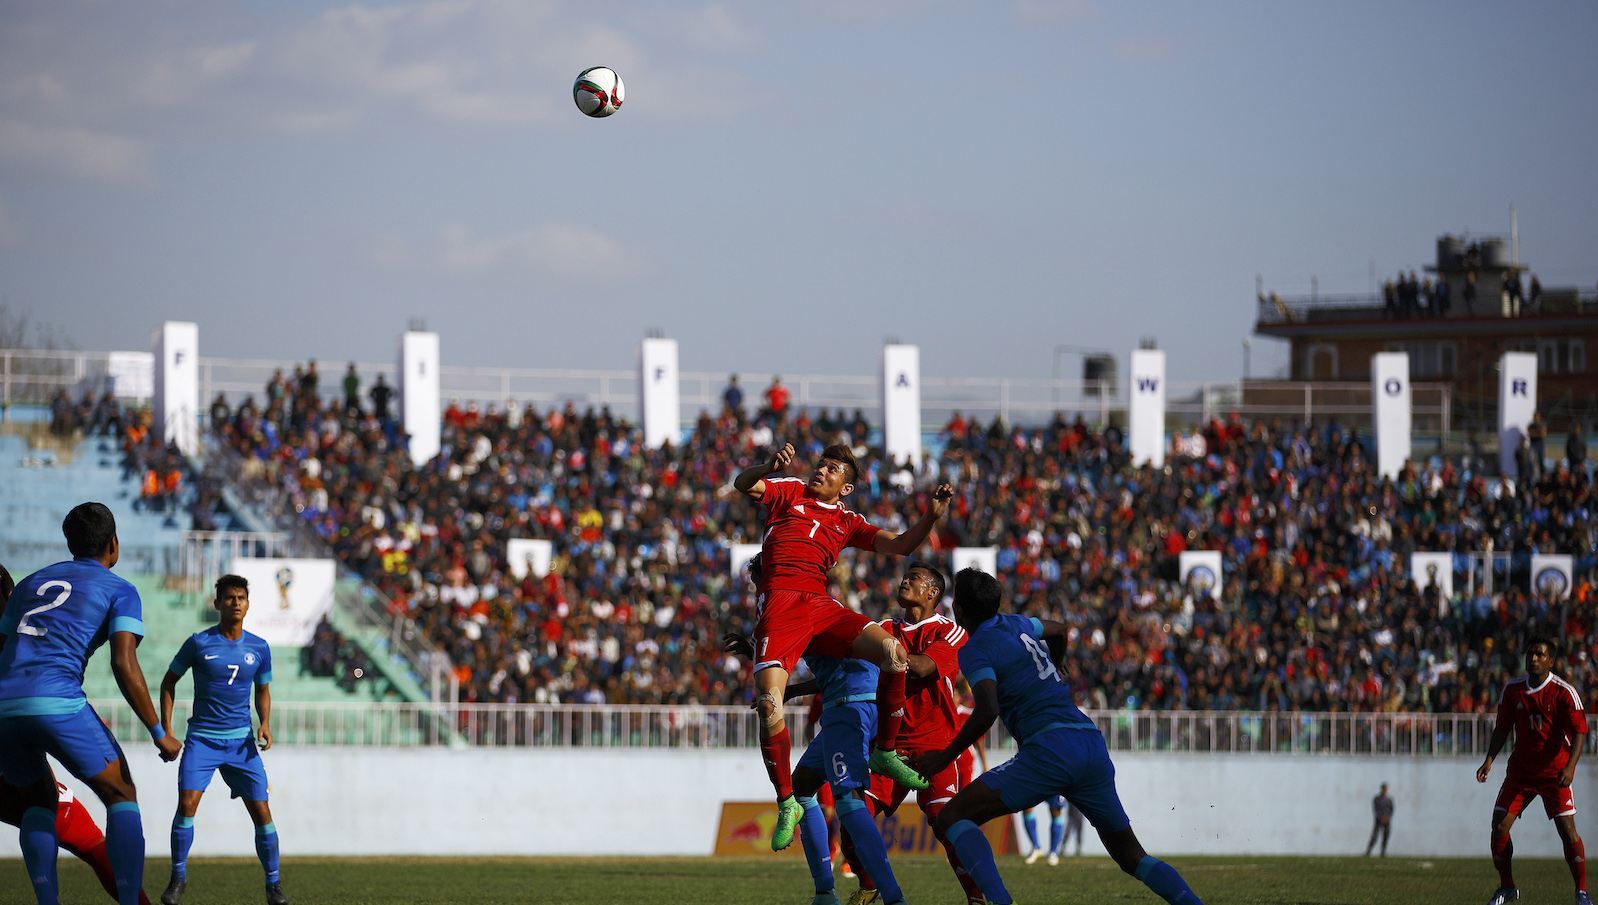 Nepal's striker Bimal Gharti Magar (top) is surrounded by India's players as he tries to head a ball during their 2018 World Cup qualifying match in Kathmandu March 17, 2015.